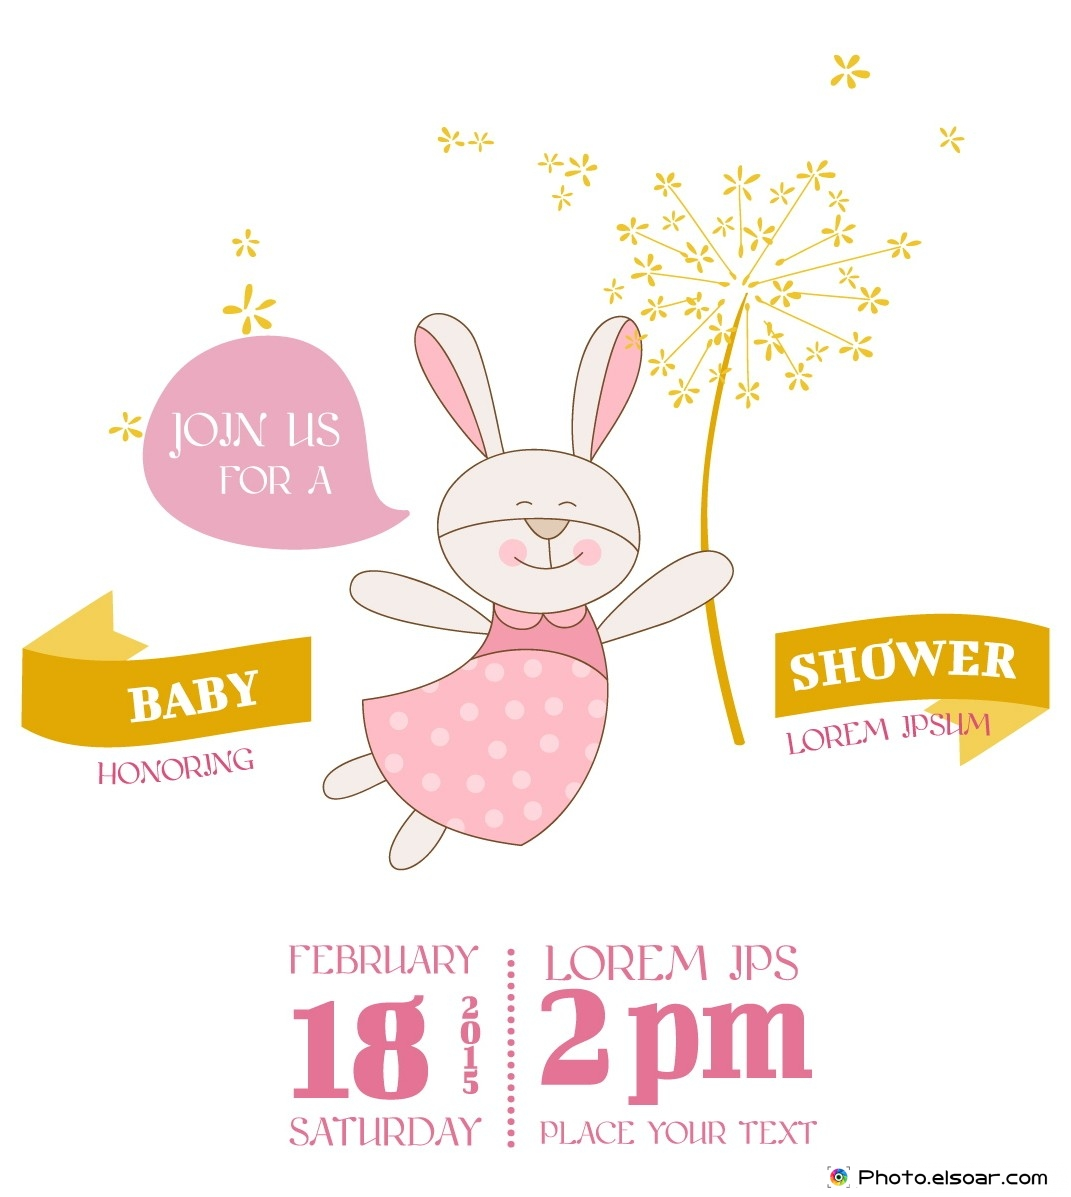 Bear Baby Shower Invitations is one of our best ideas you might choose for invitation design